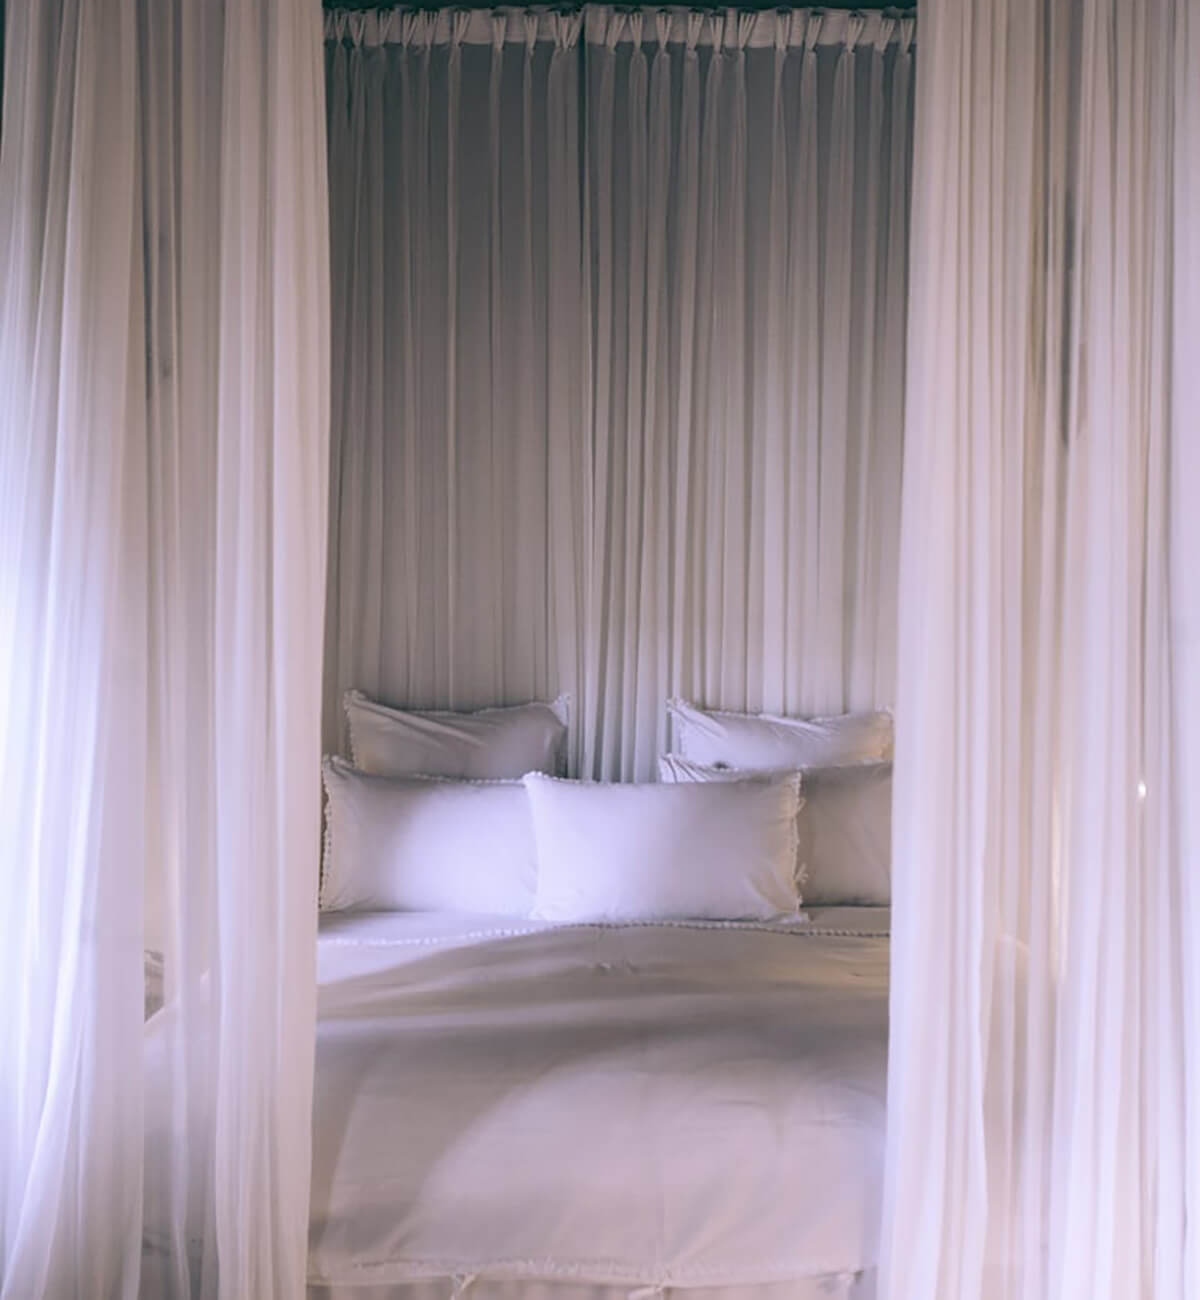 Invest in good quality throws, duvets, and comforters